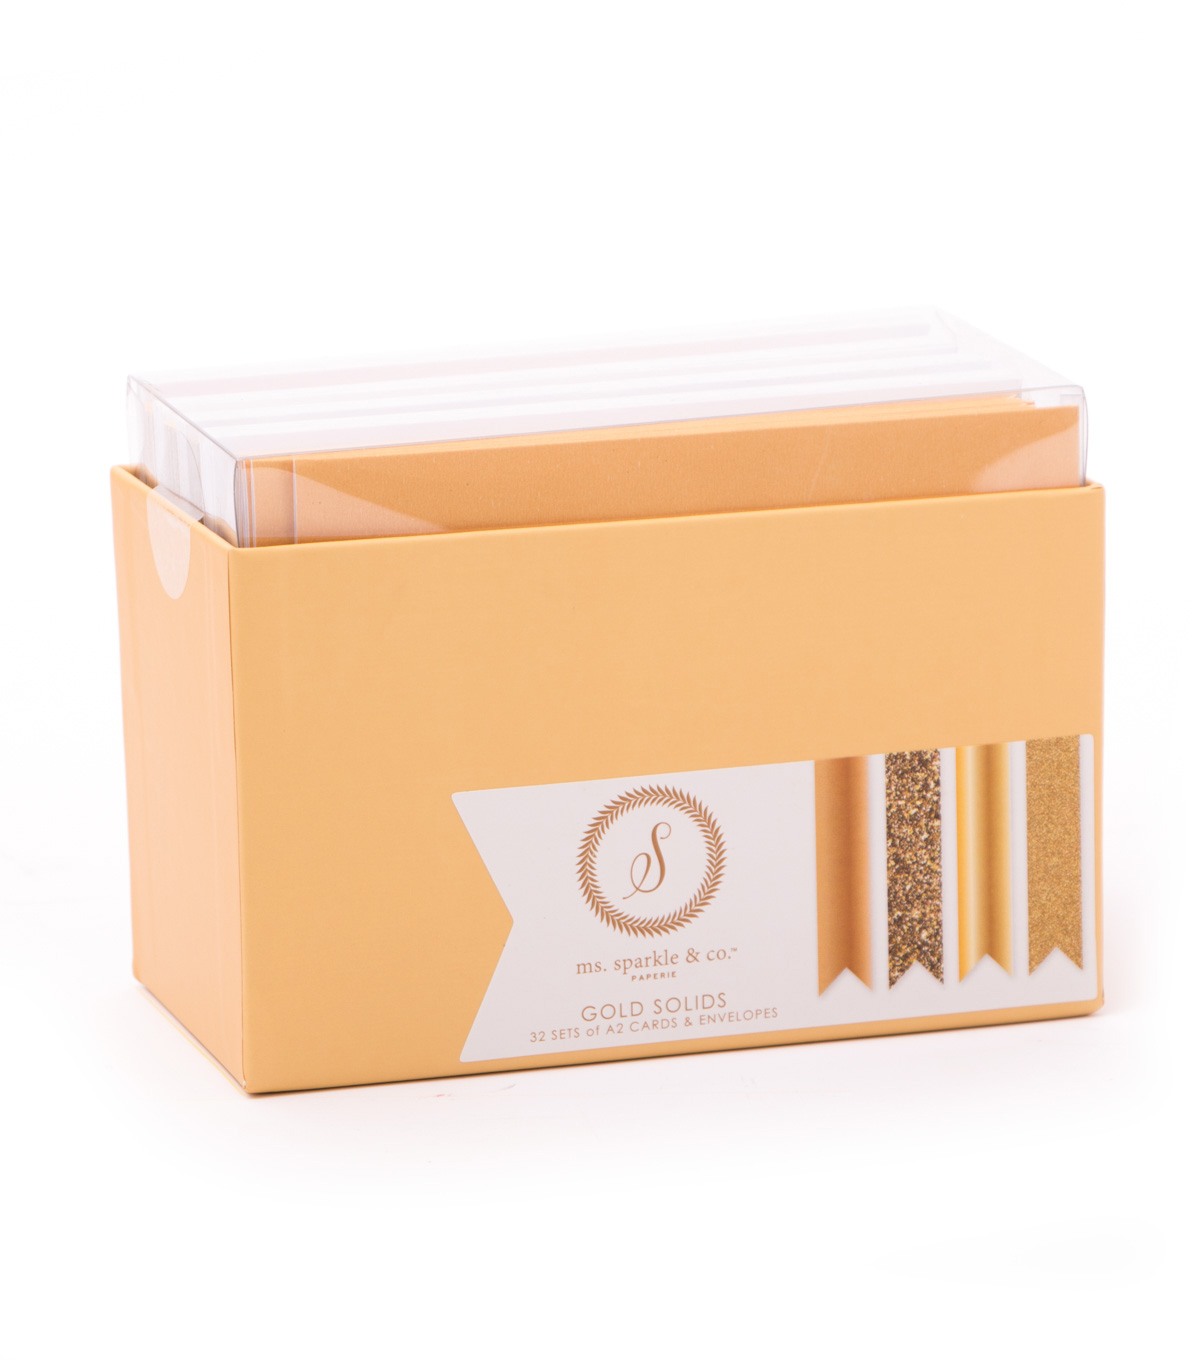 Ms. Sparkle & Co. Pack of 32 A2 Cards & Envelopes-Gold Solids